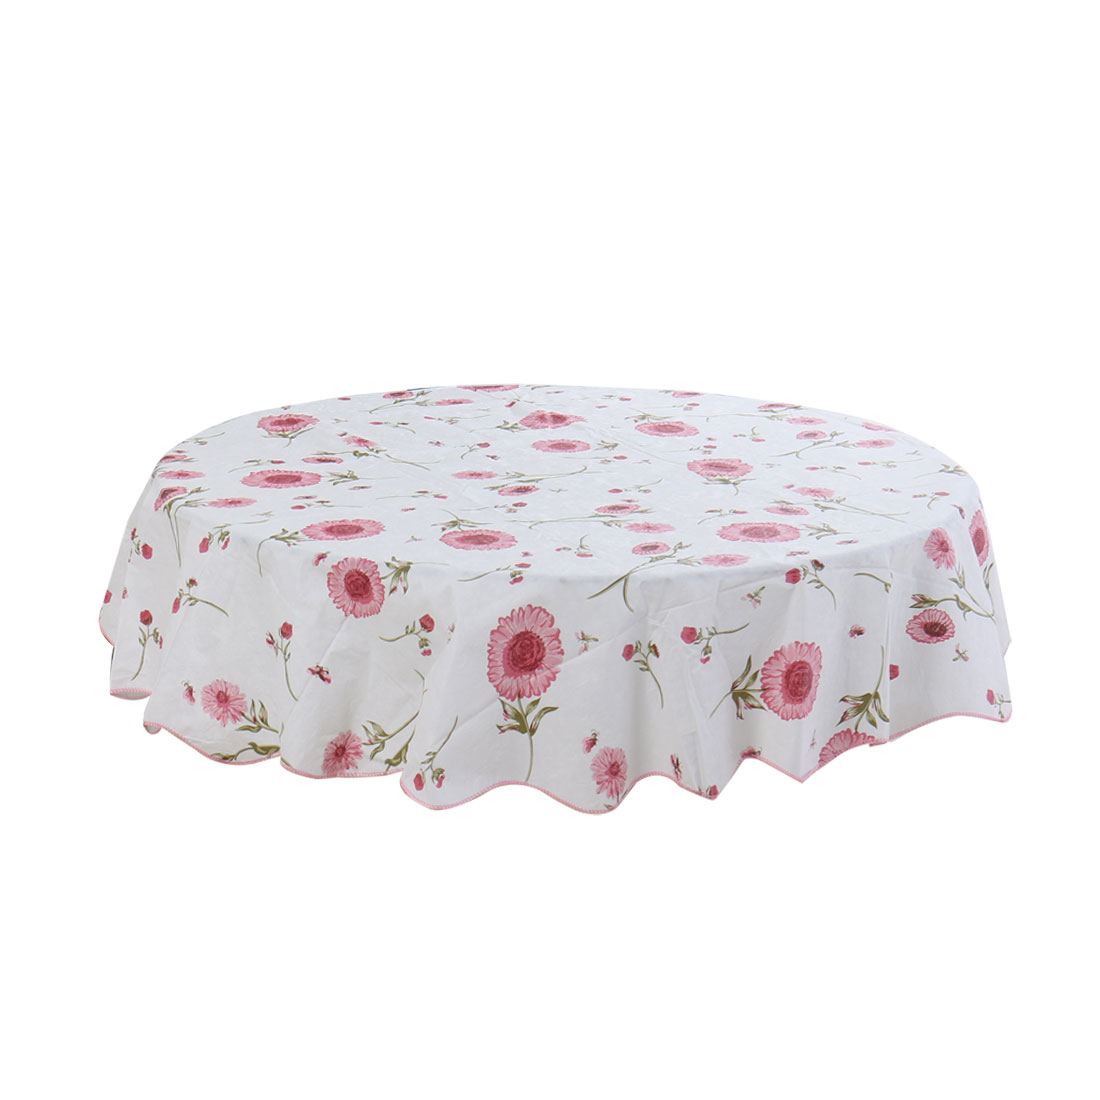 Home Sunflower Pattern Round Water Resistant Table Protector Cloth Cover Pink